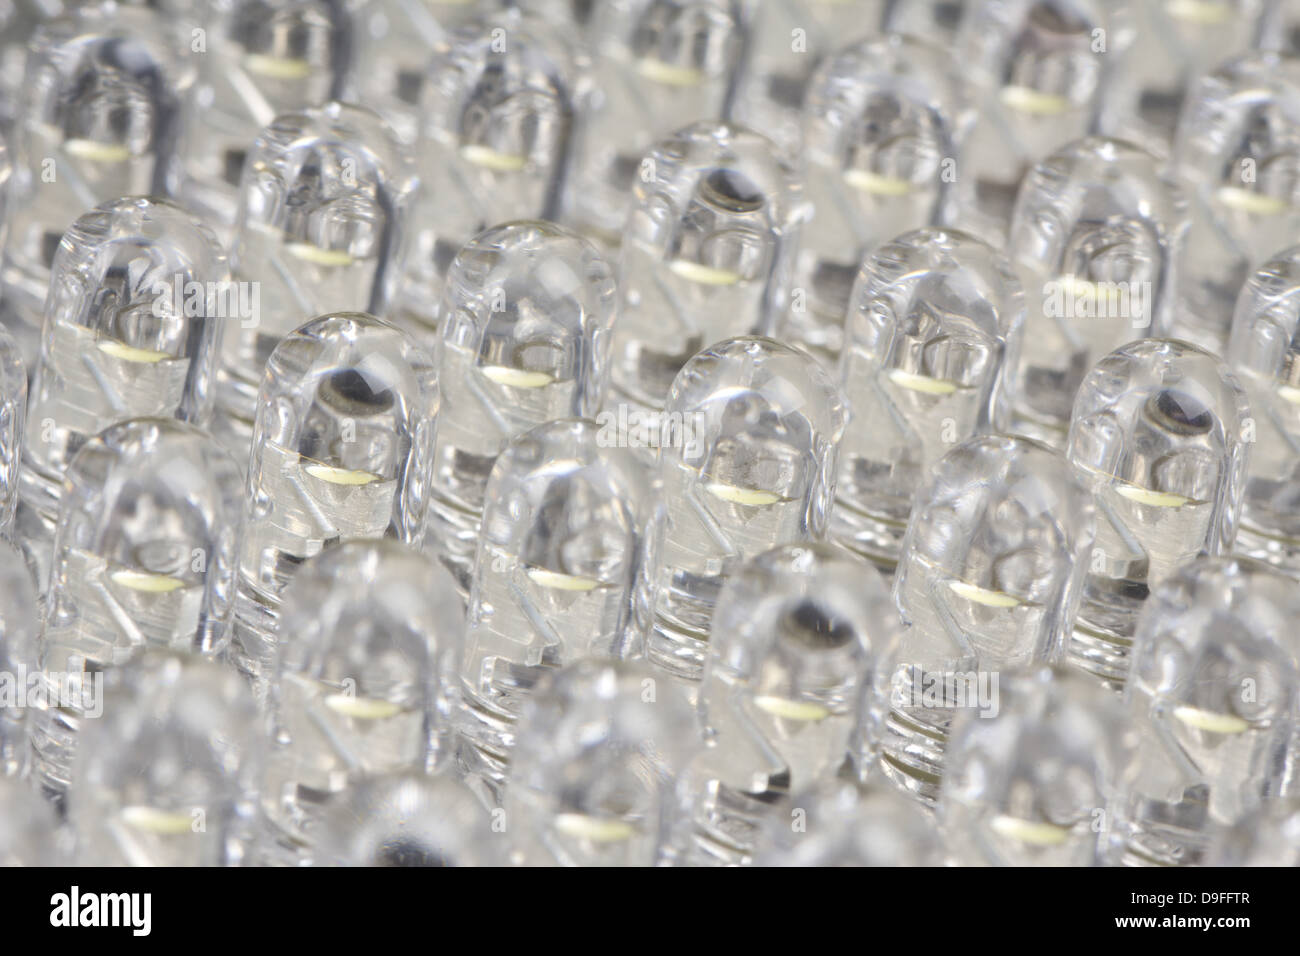 LED's von einer Videolampe |LED's from a video light| - Stock Image